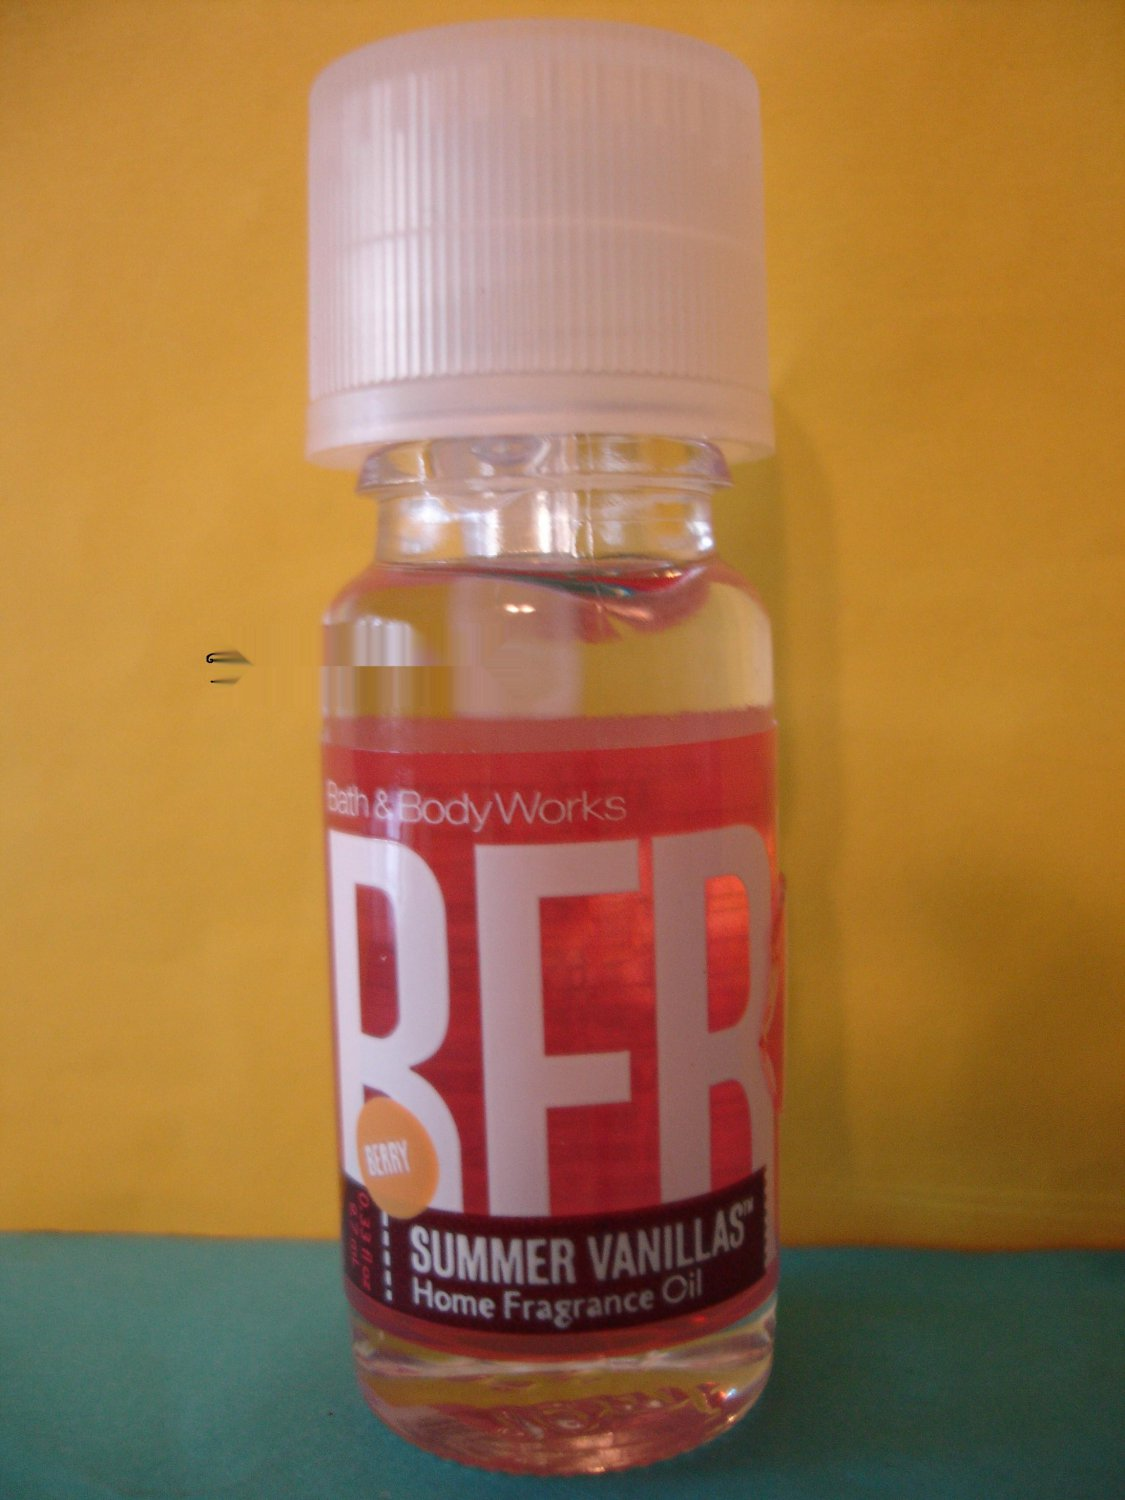 Bath Amp Body Works Berry Vanilla Home Fragrance Oil